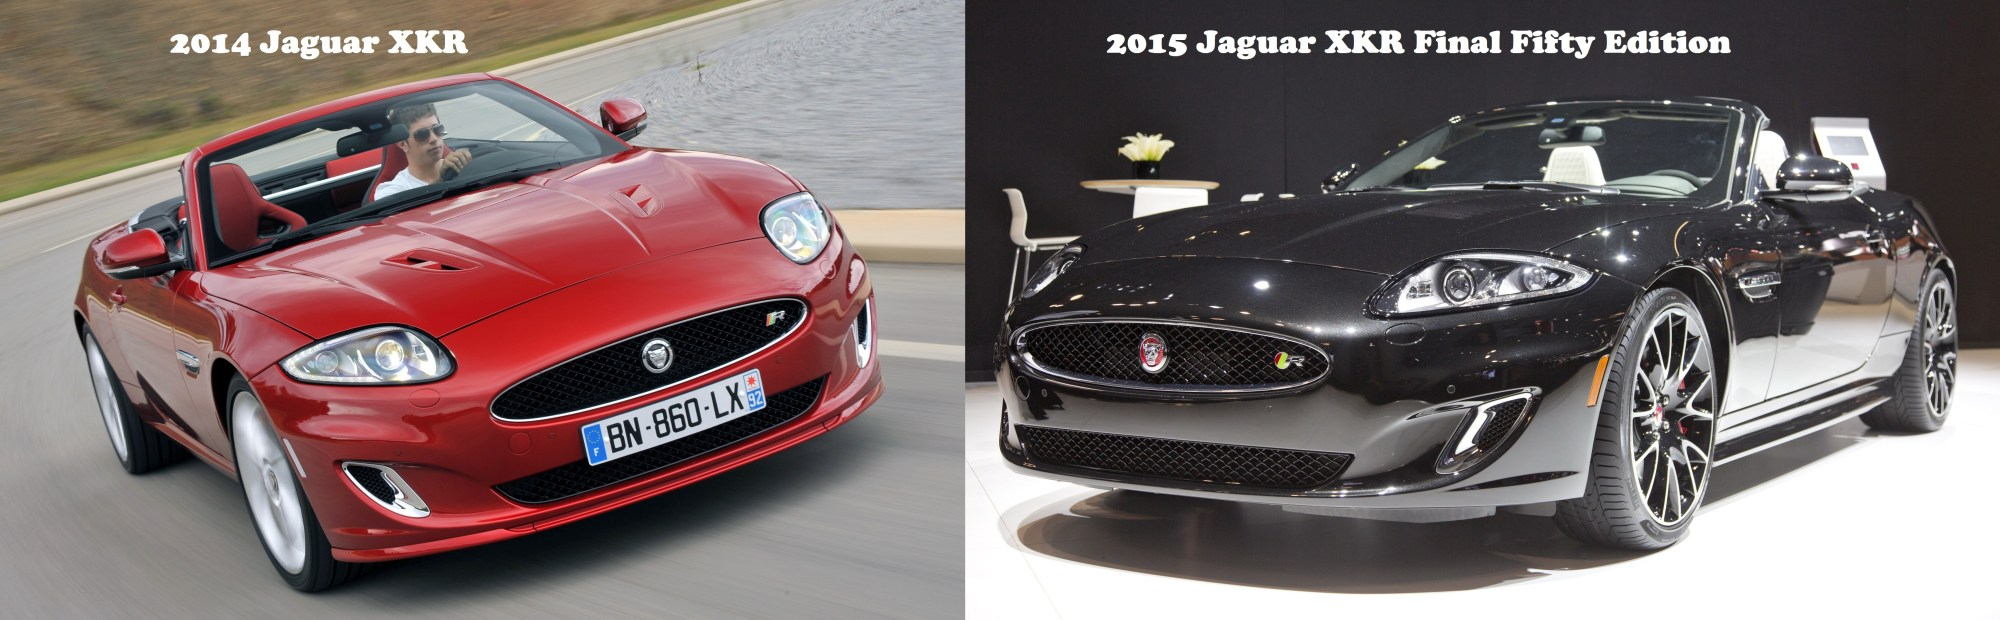 hight resolution of 2015 jaguar xk final fifty edition